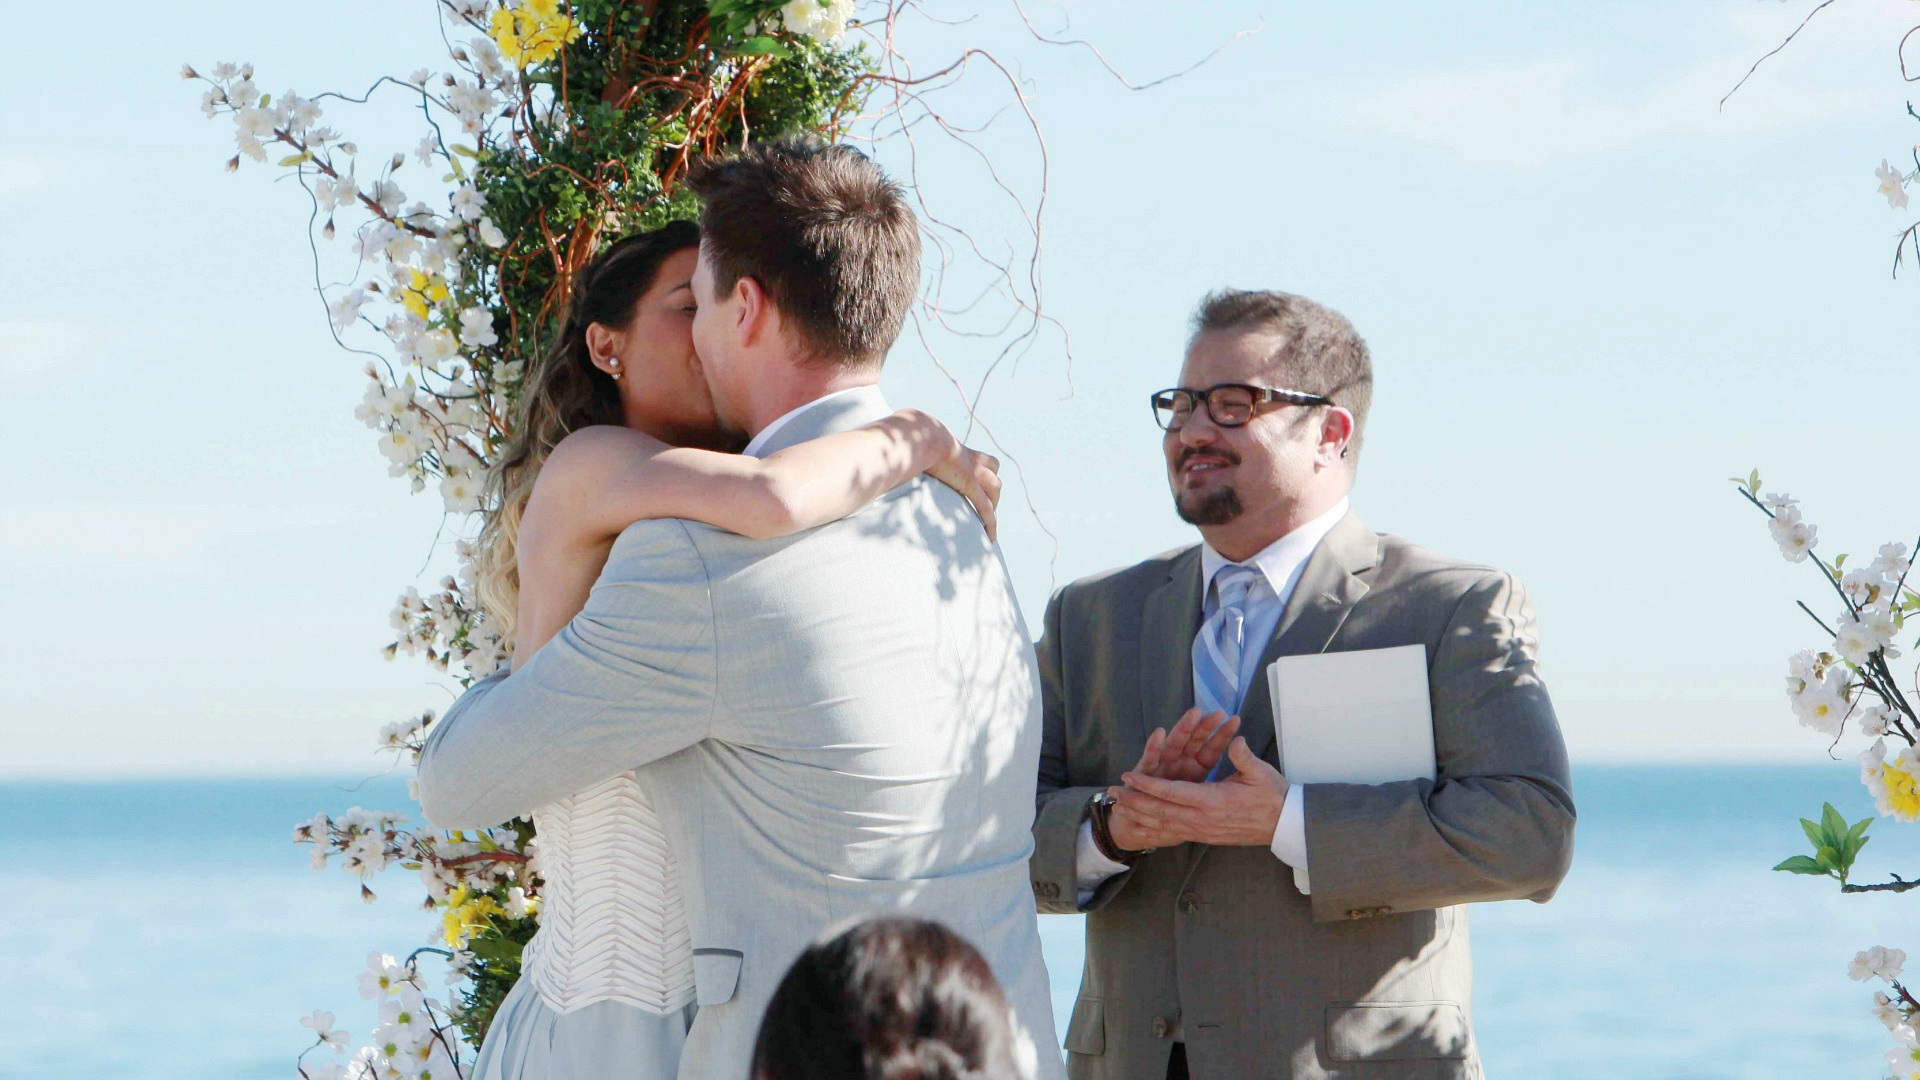 The couple seals their vows with a kiss.